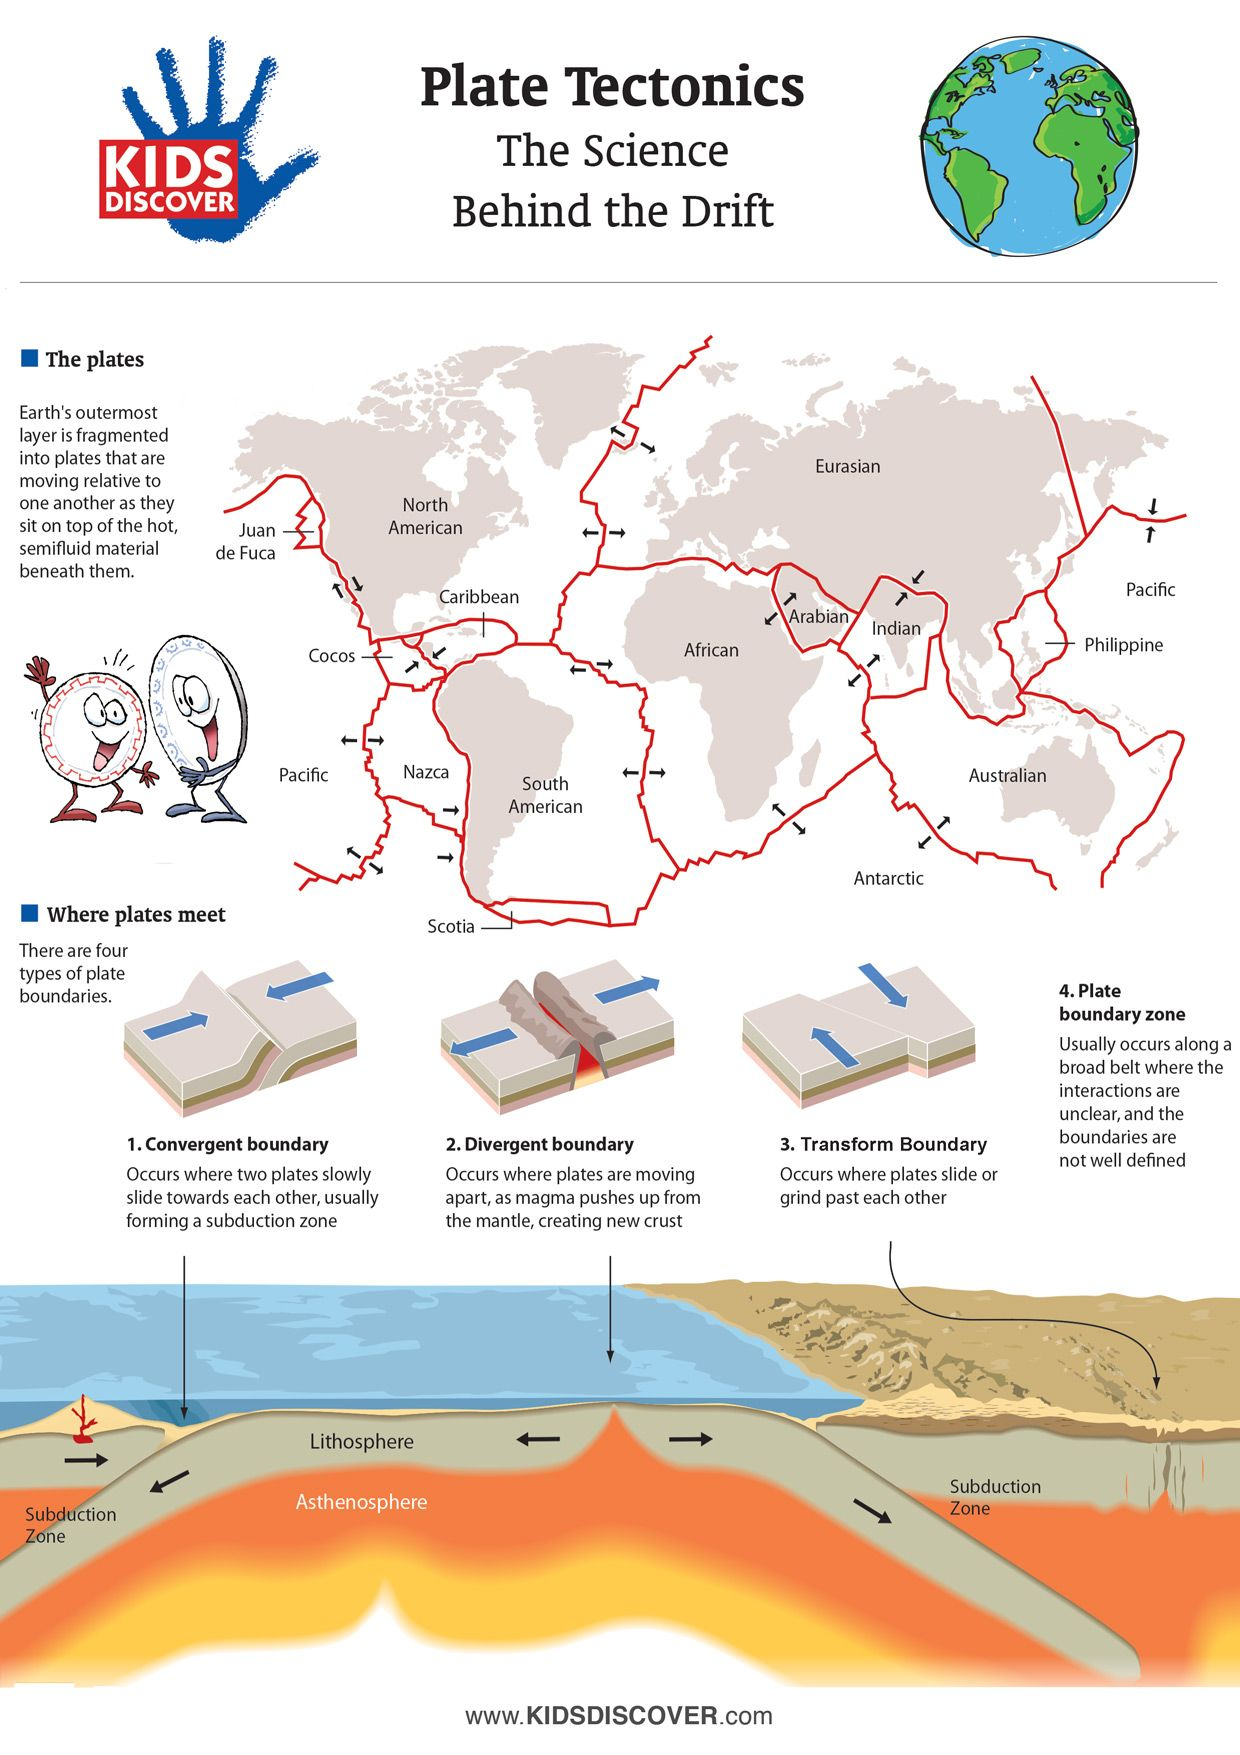 Uncategorized Plate Tectonics Worksheets illustrate the concept of plate tectonics for kids with this detailed full color infographic from